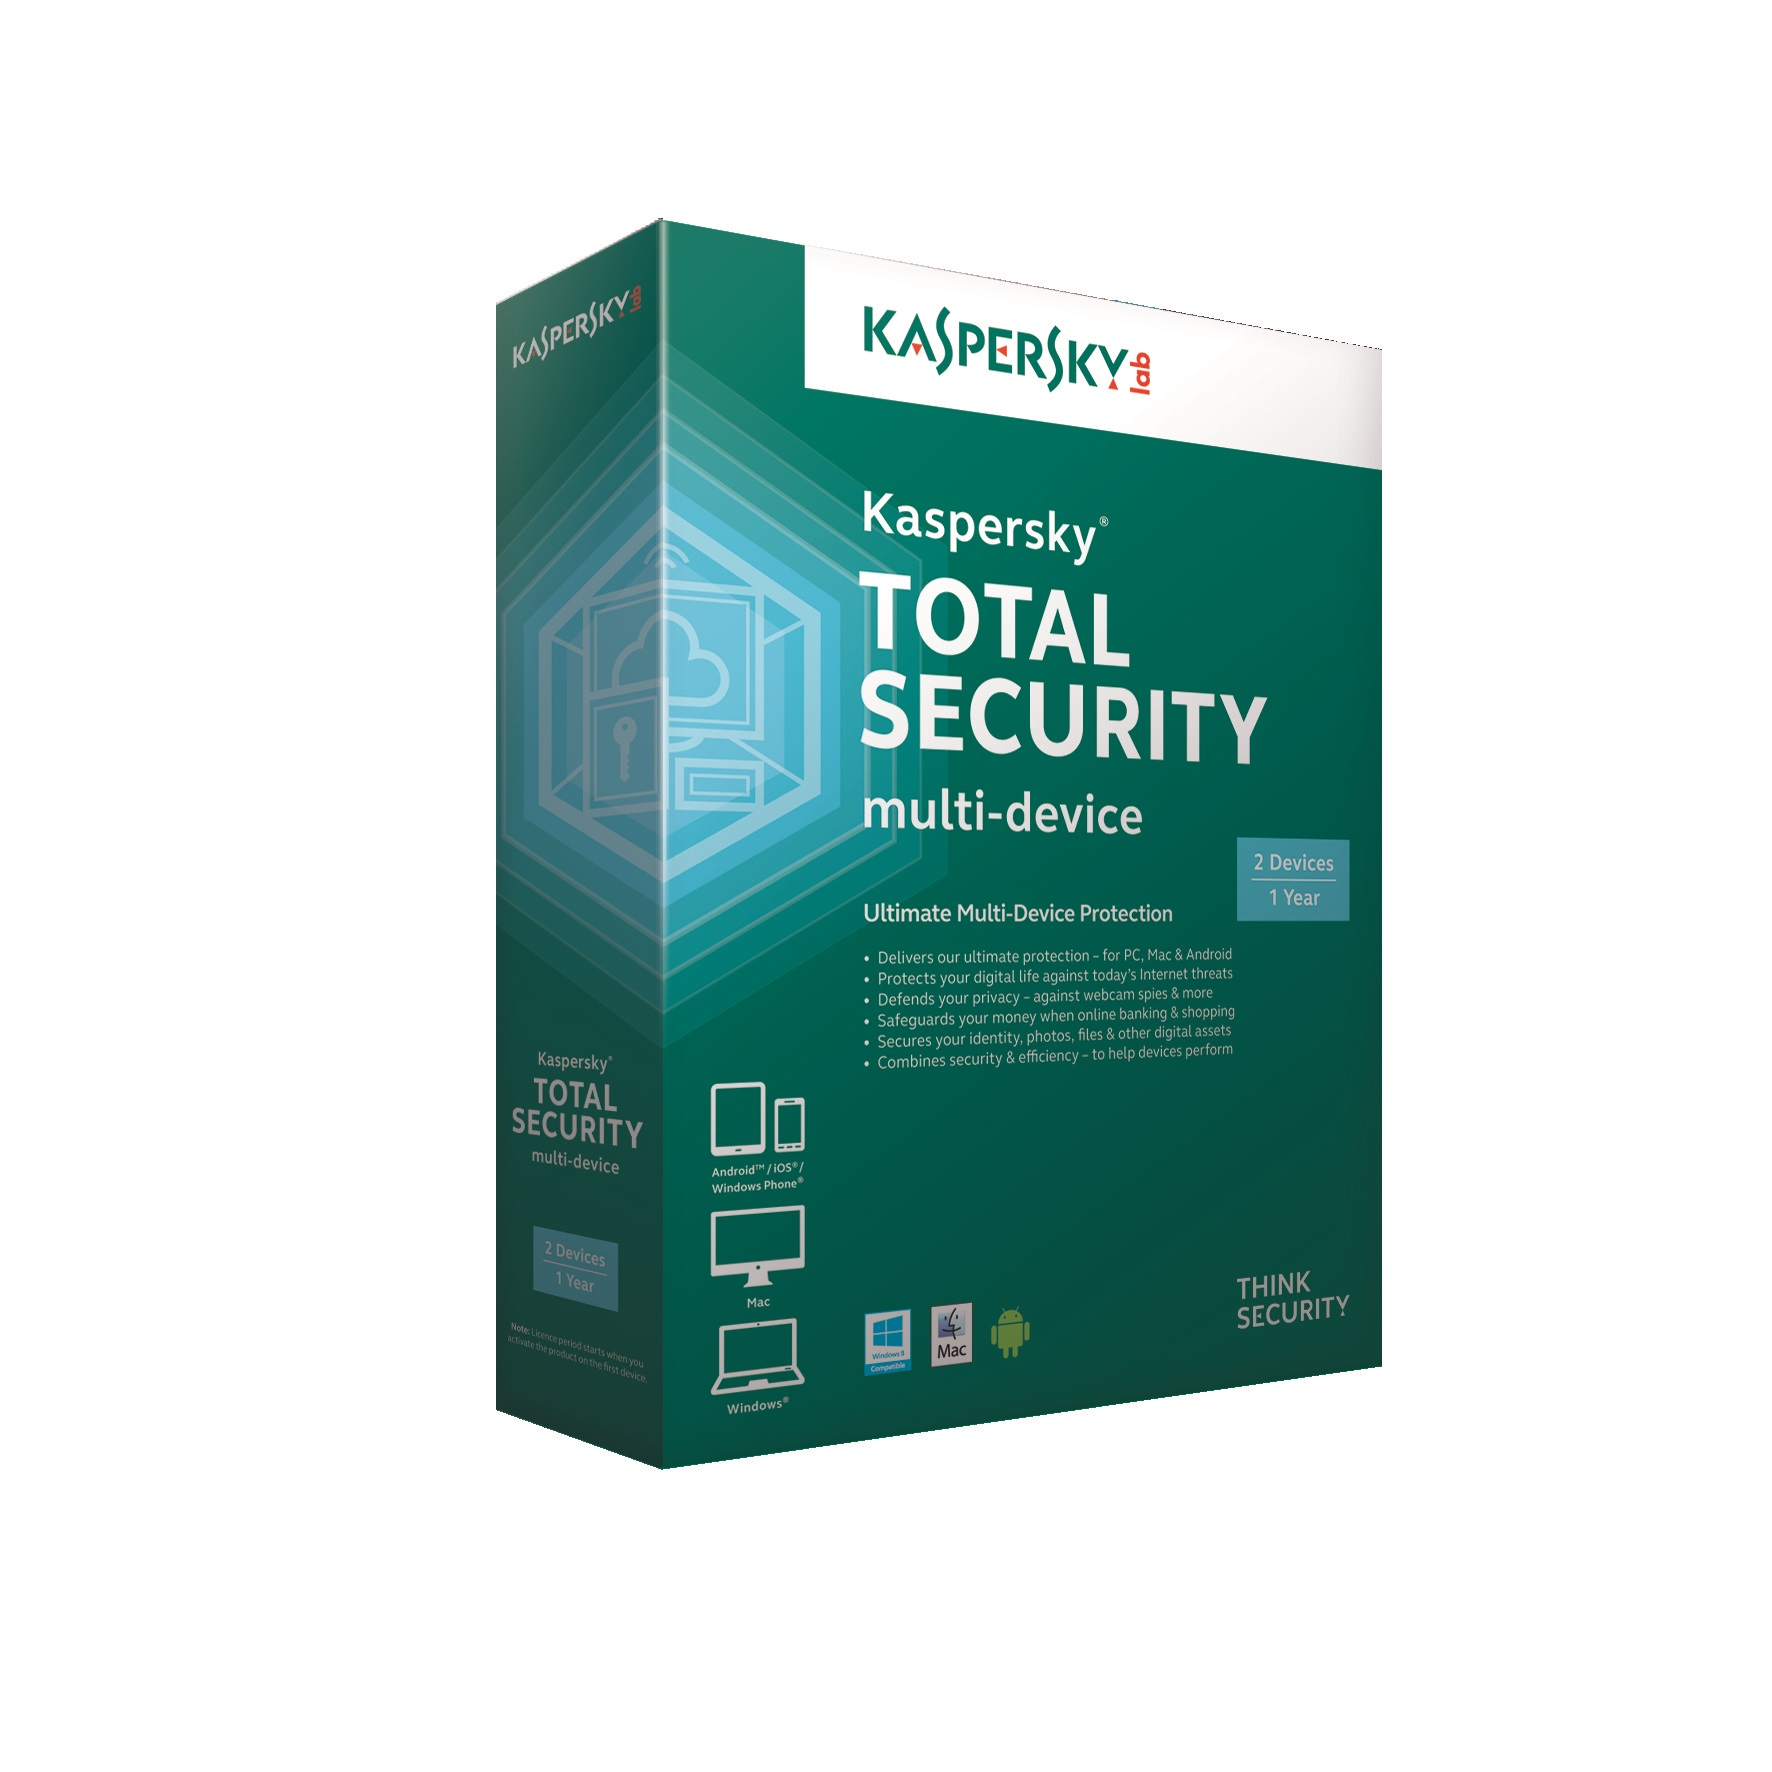 Kaspersky Total Security 2016 Multi Device